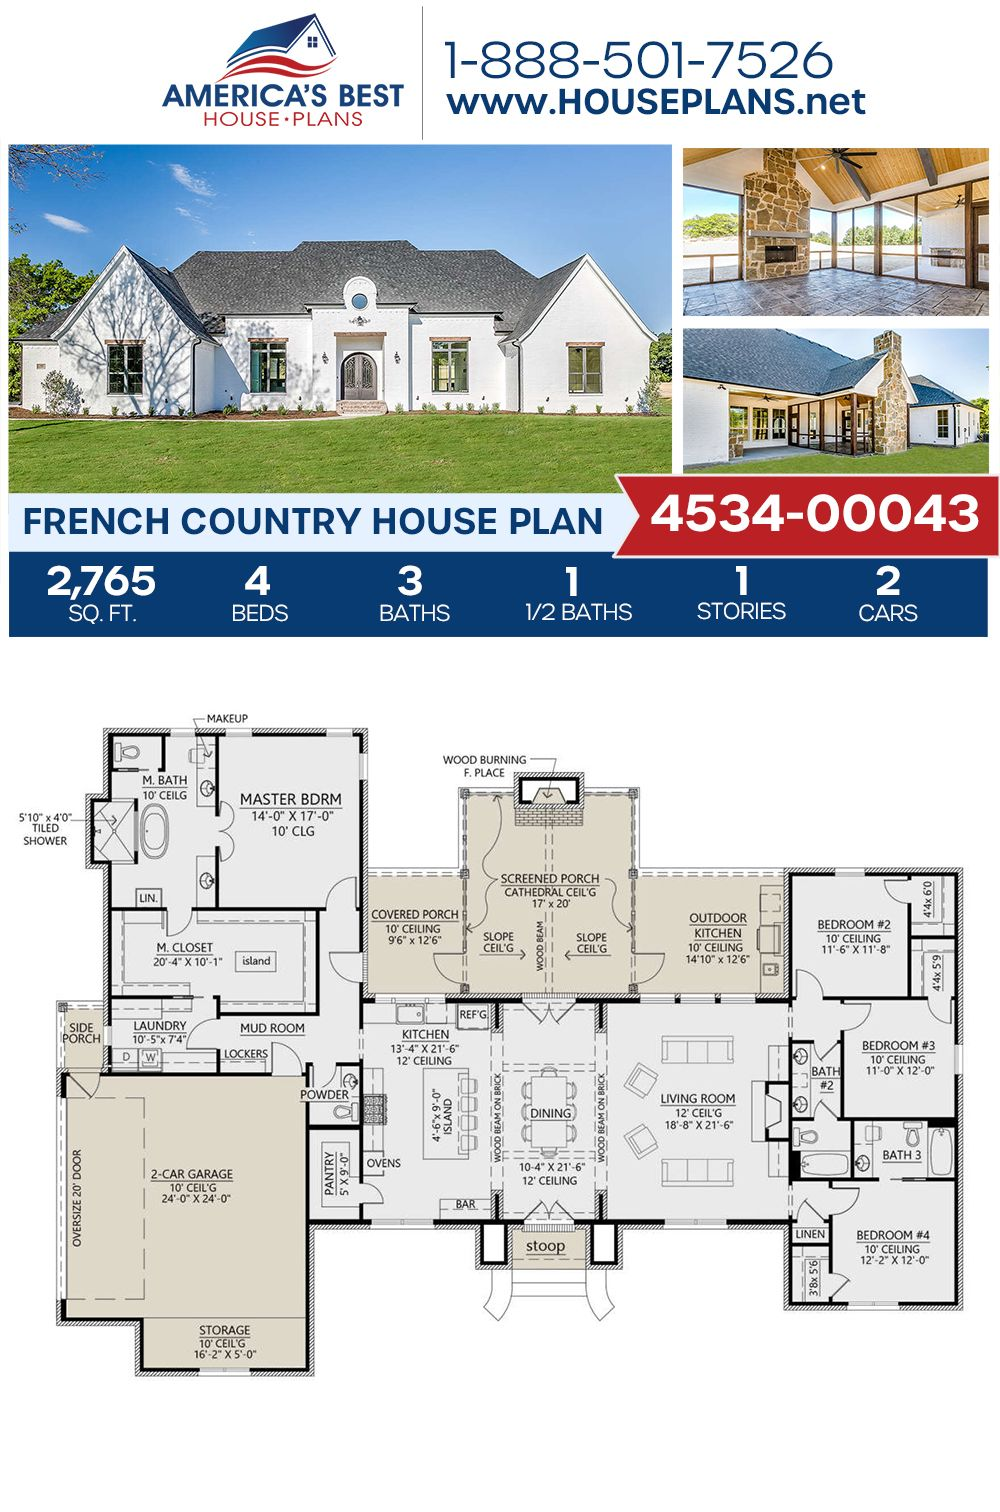 House Plan 4534 00043 French Country Plan 2 765 Square Feet 4 Bedrooms 3 5 Bathrooms French Country House Plans French Country House Country House Plan